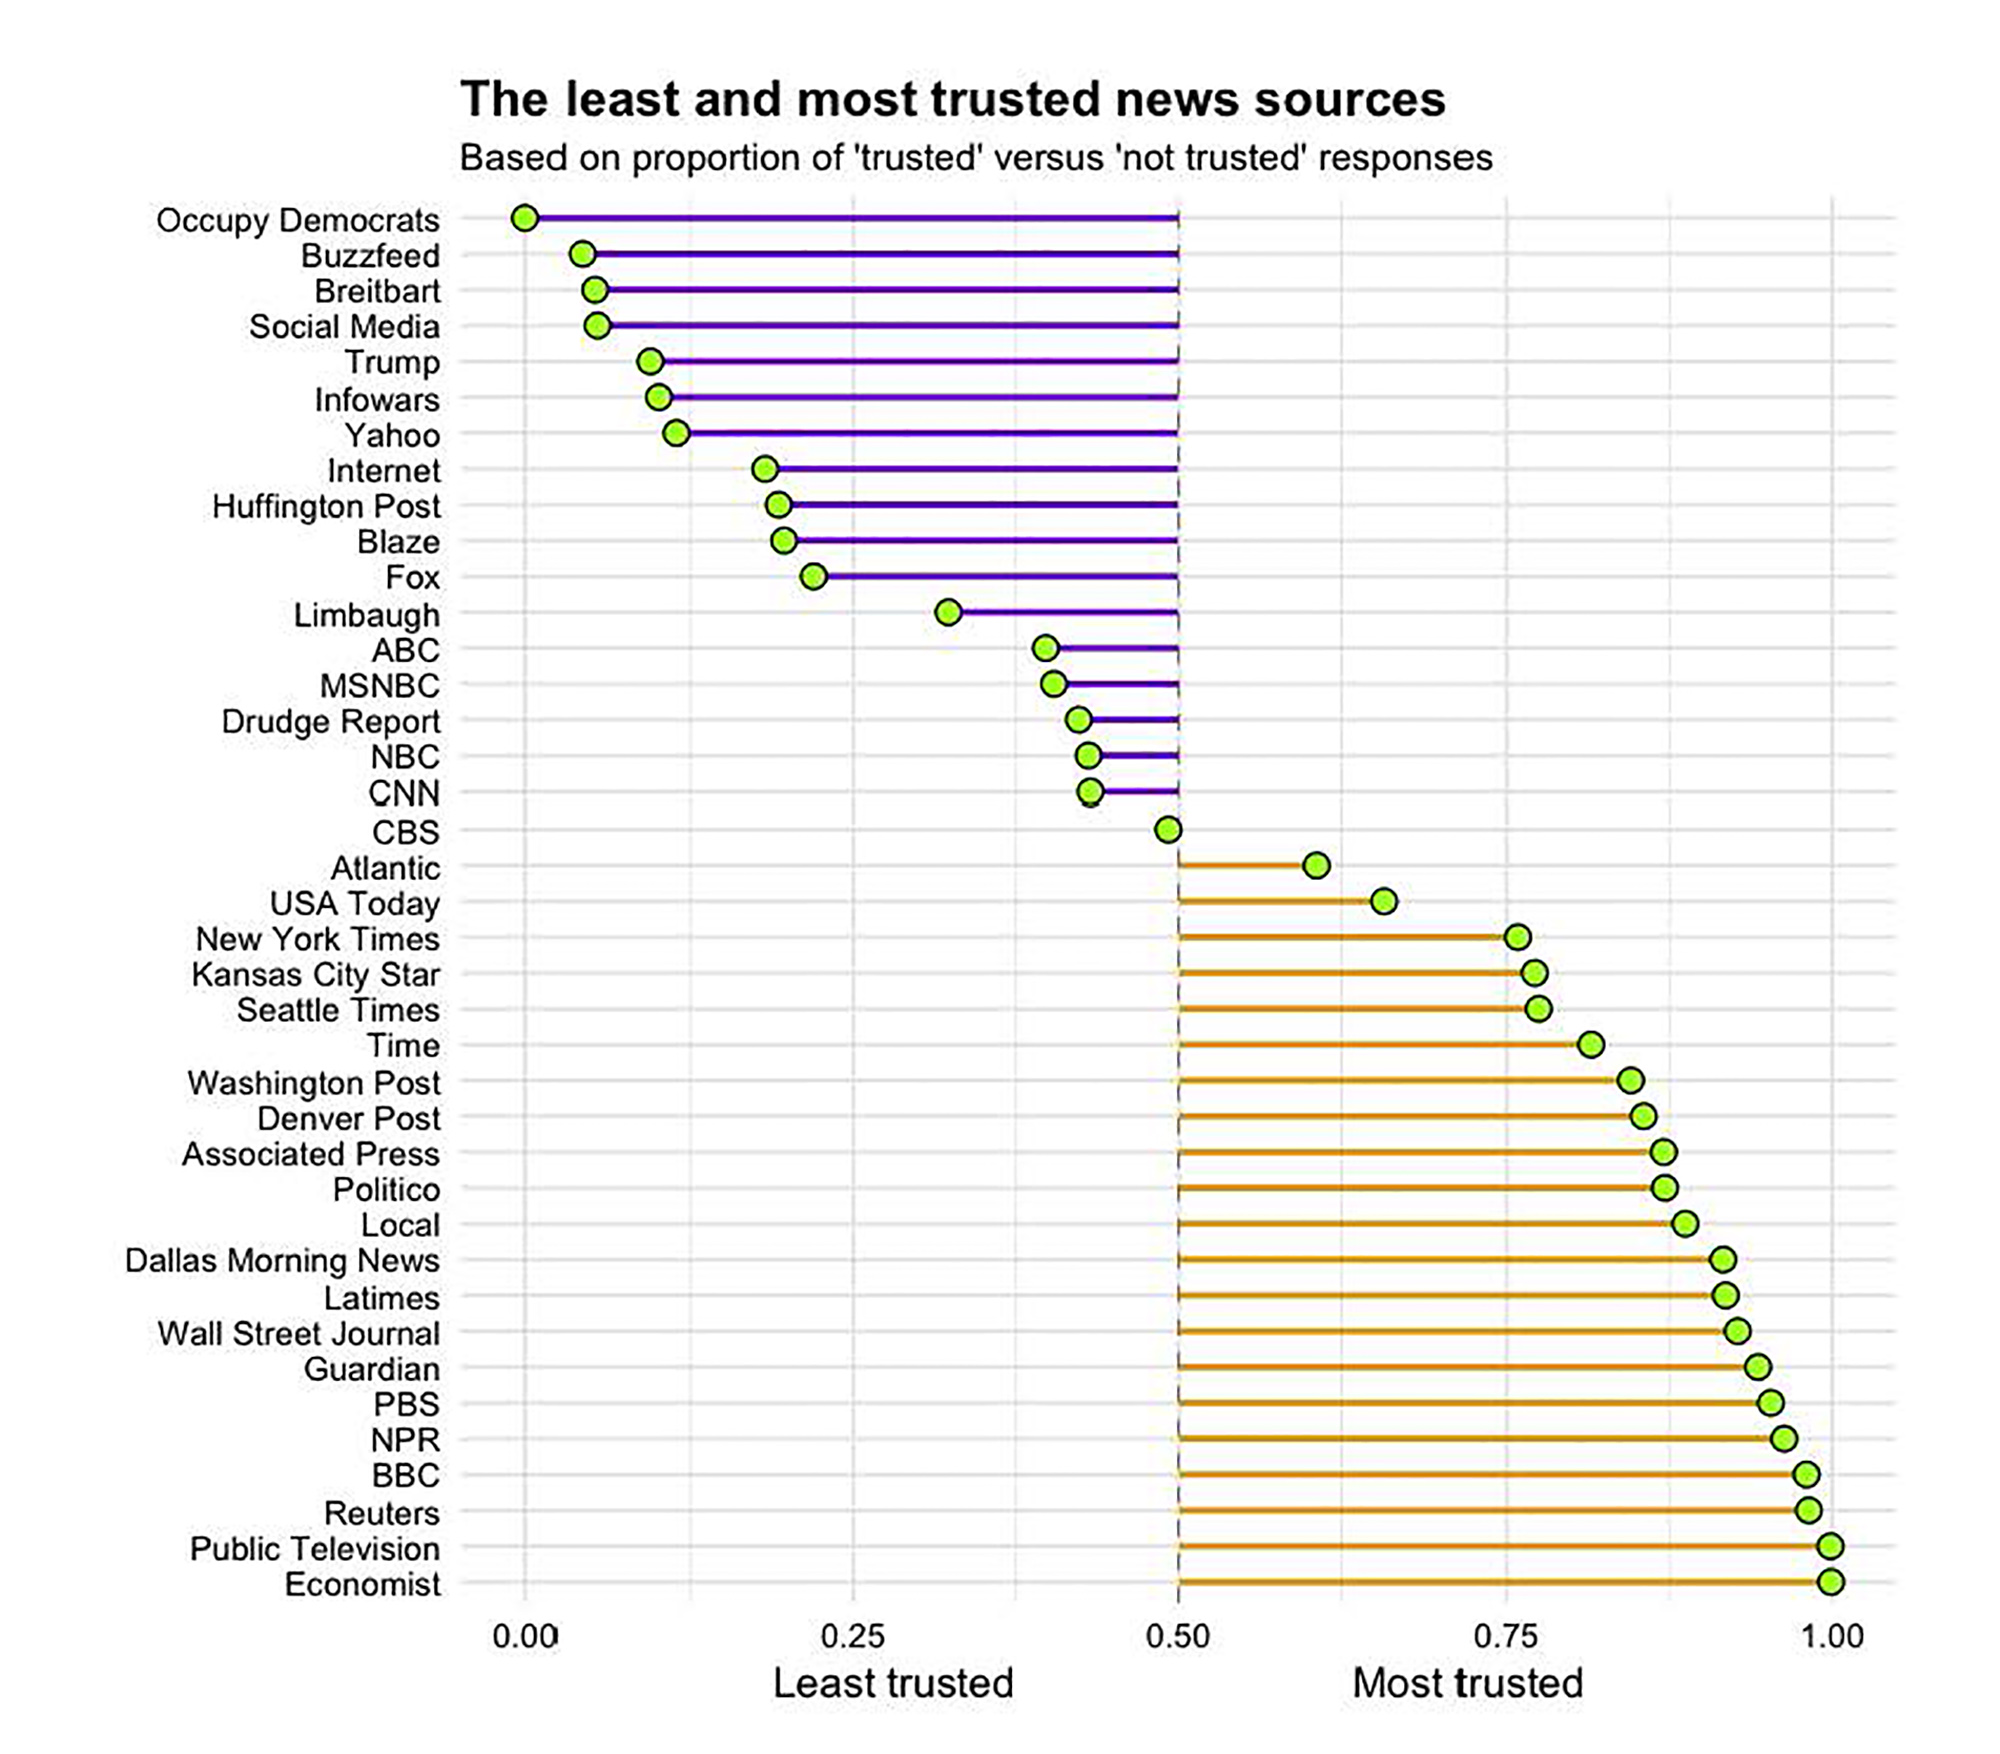 Most trusted news sources in the communications industry